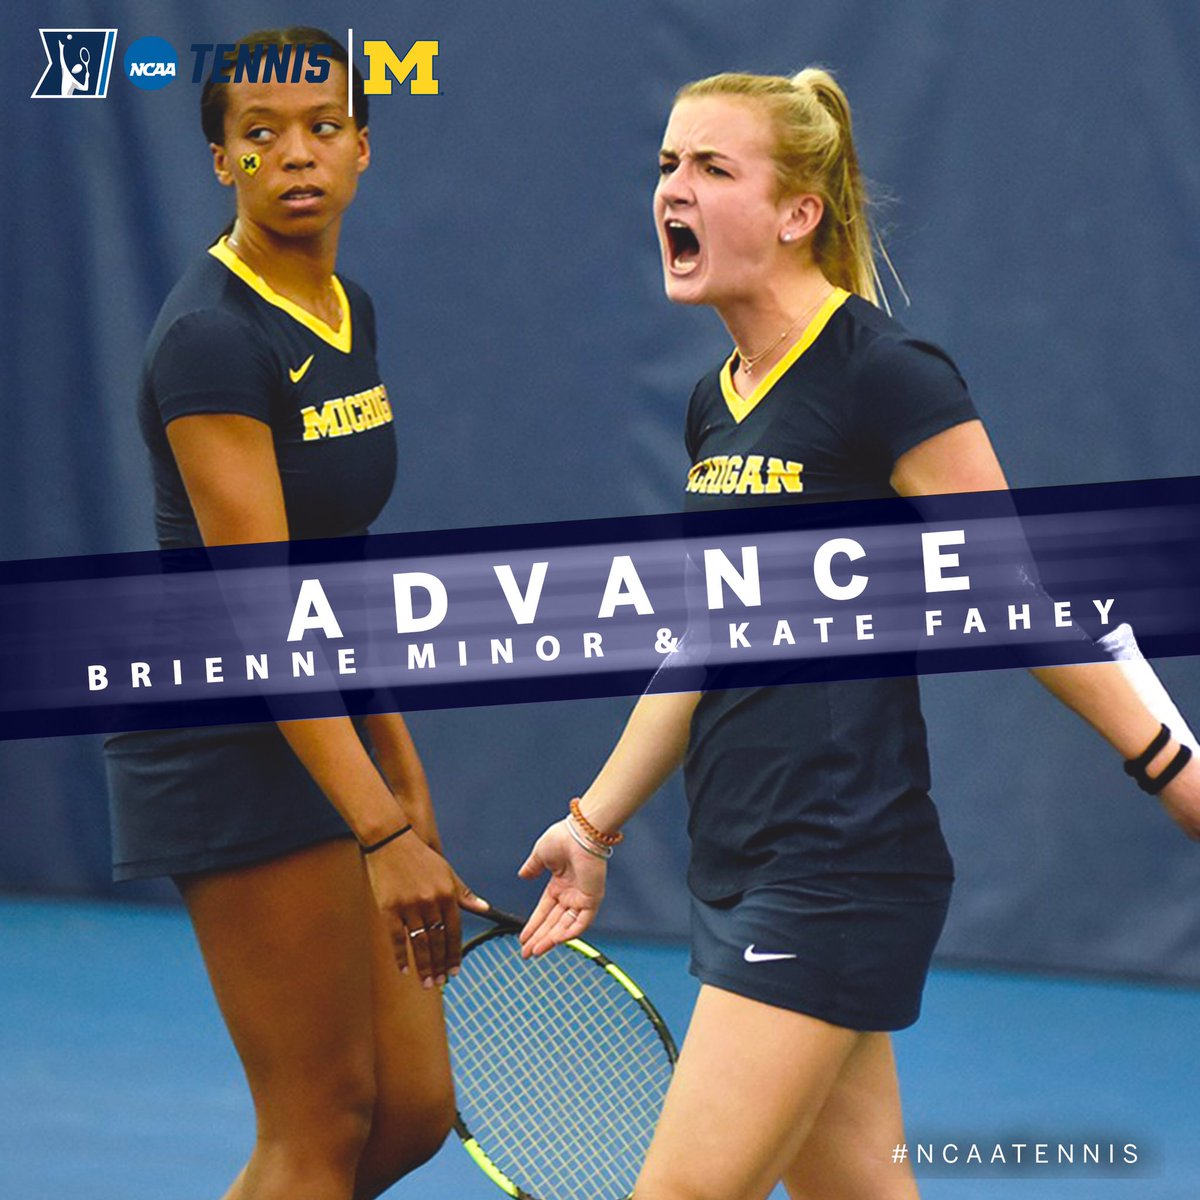 In the Second Round of the @NCAATennis Women's Doubles Championship, Kate Fahey & Brienne Minor of @UMichWTennis advanced to the Quarterfinals with a 6-2, 7-6 win over a team from UCLA. #B1GWTennis